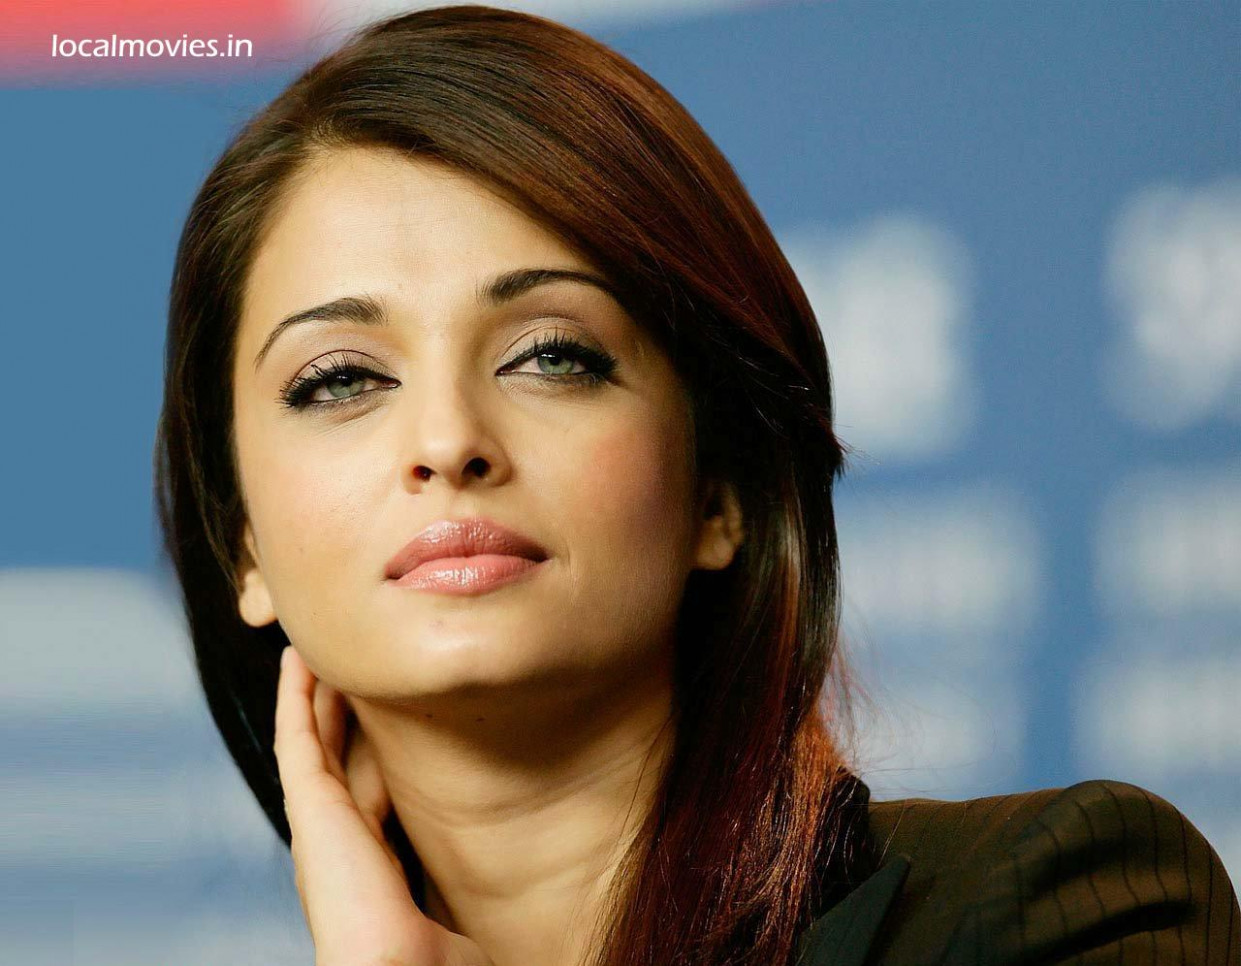 Indian Actors and Actresses - Biography, Wallpapers: Miss ...